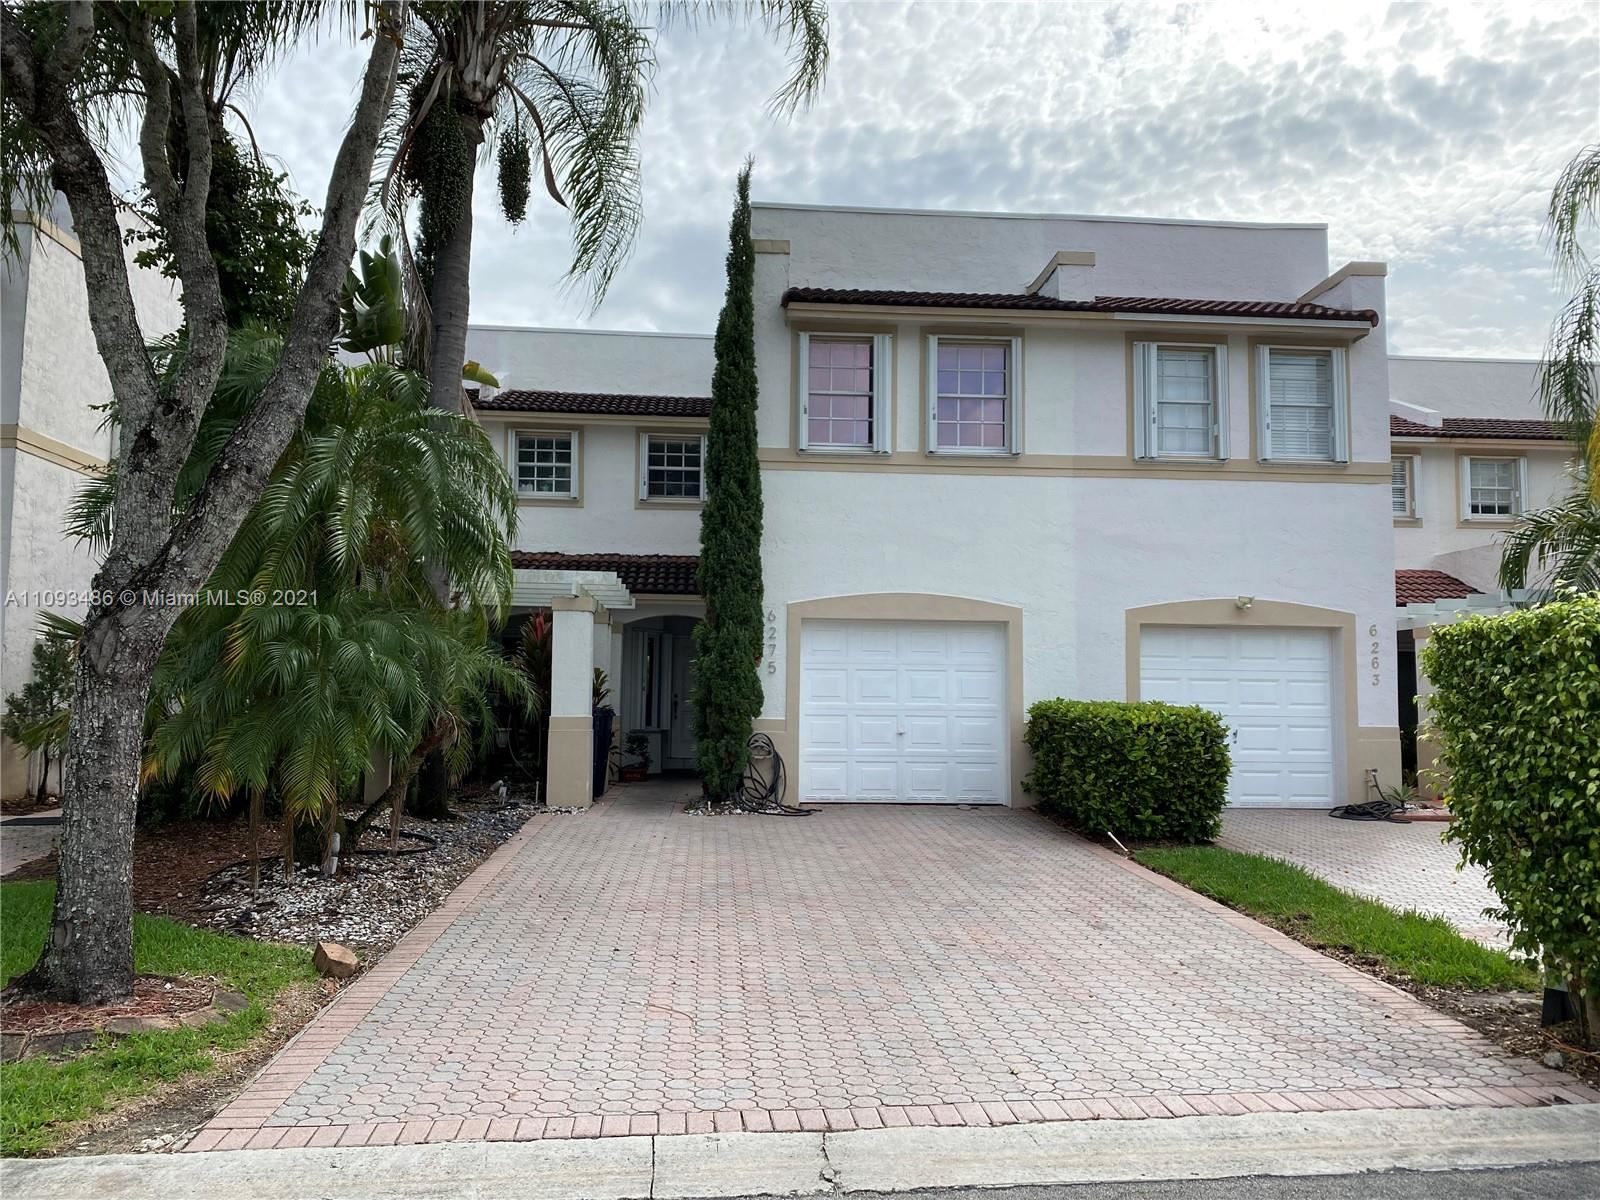 6275 NW 109th Ave, Doral, FL 33178 - #: A11093486